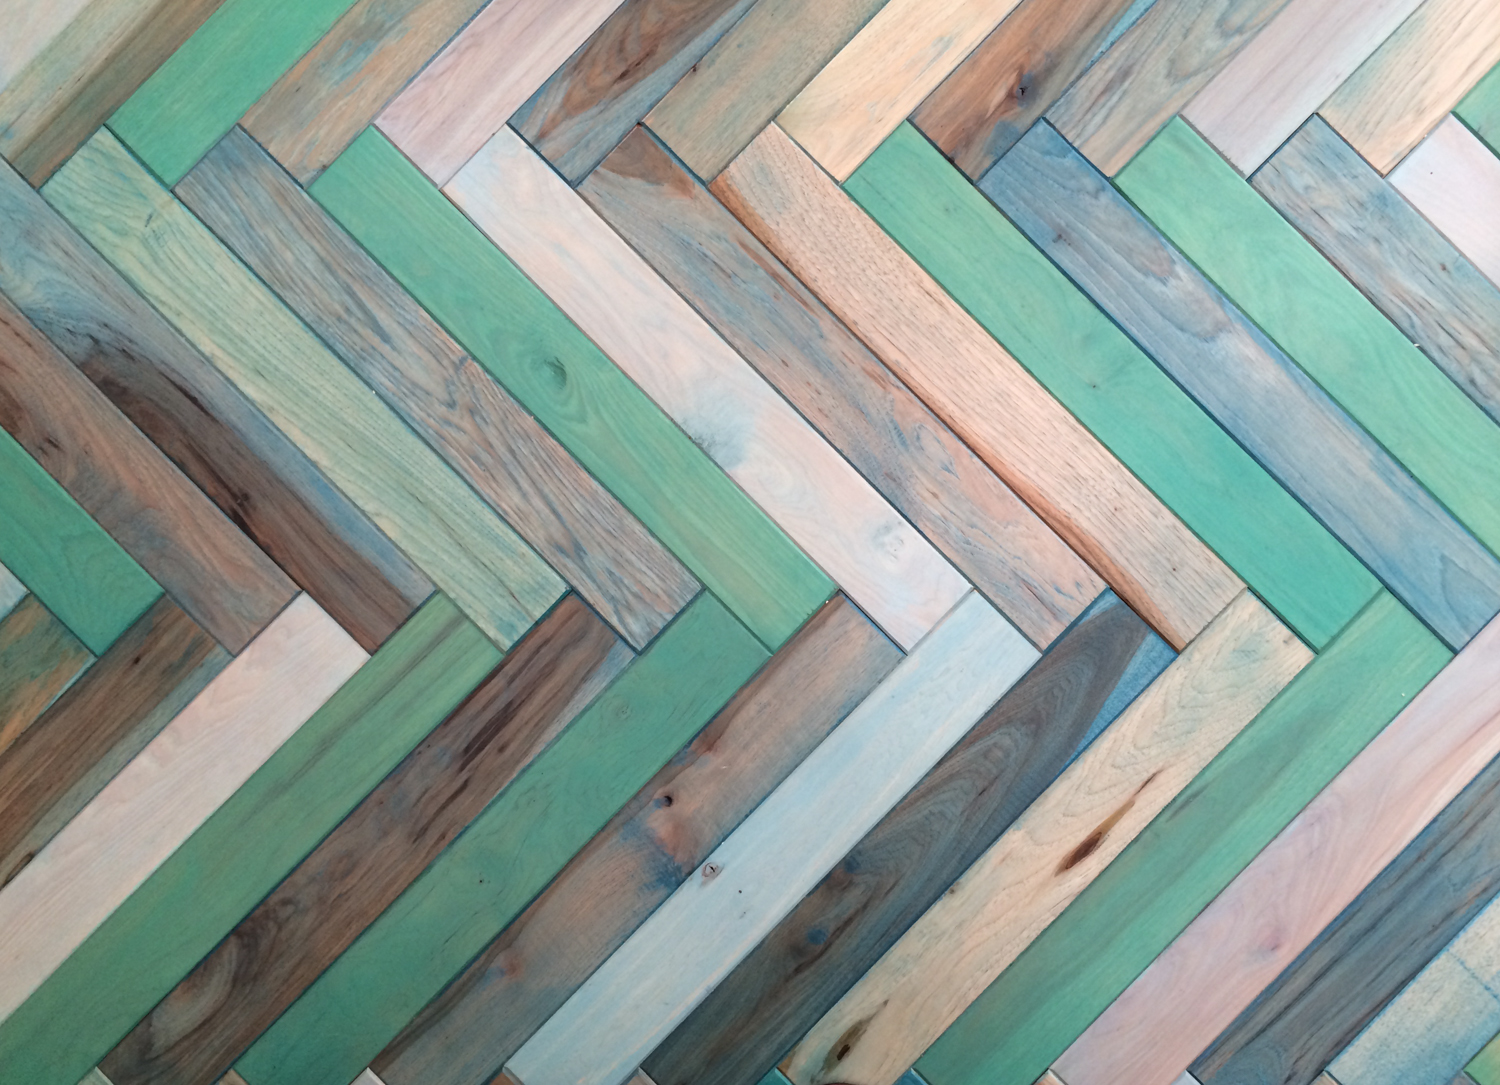 The client brought us an image of a daring museum space in Germany that featured an acid green rubber floor. I offered a more regionally appropriate, western vernacular idea of a herringbone turquoise floor. They loved the idea, and went for it on the spot.